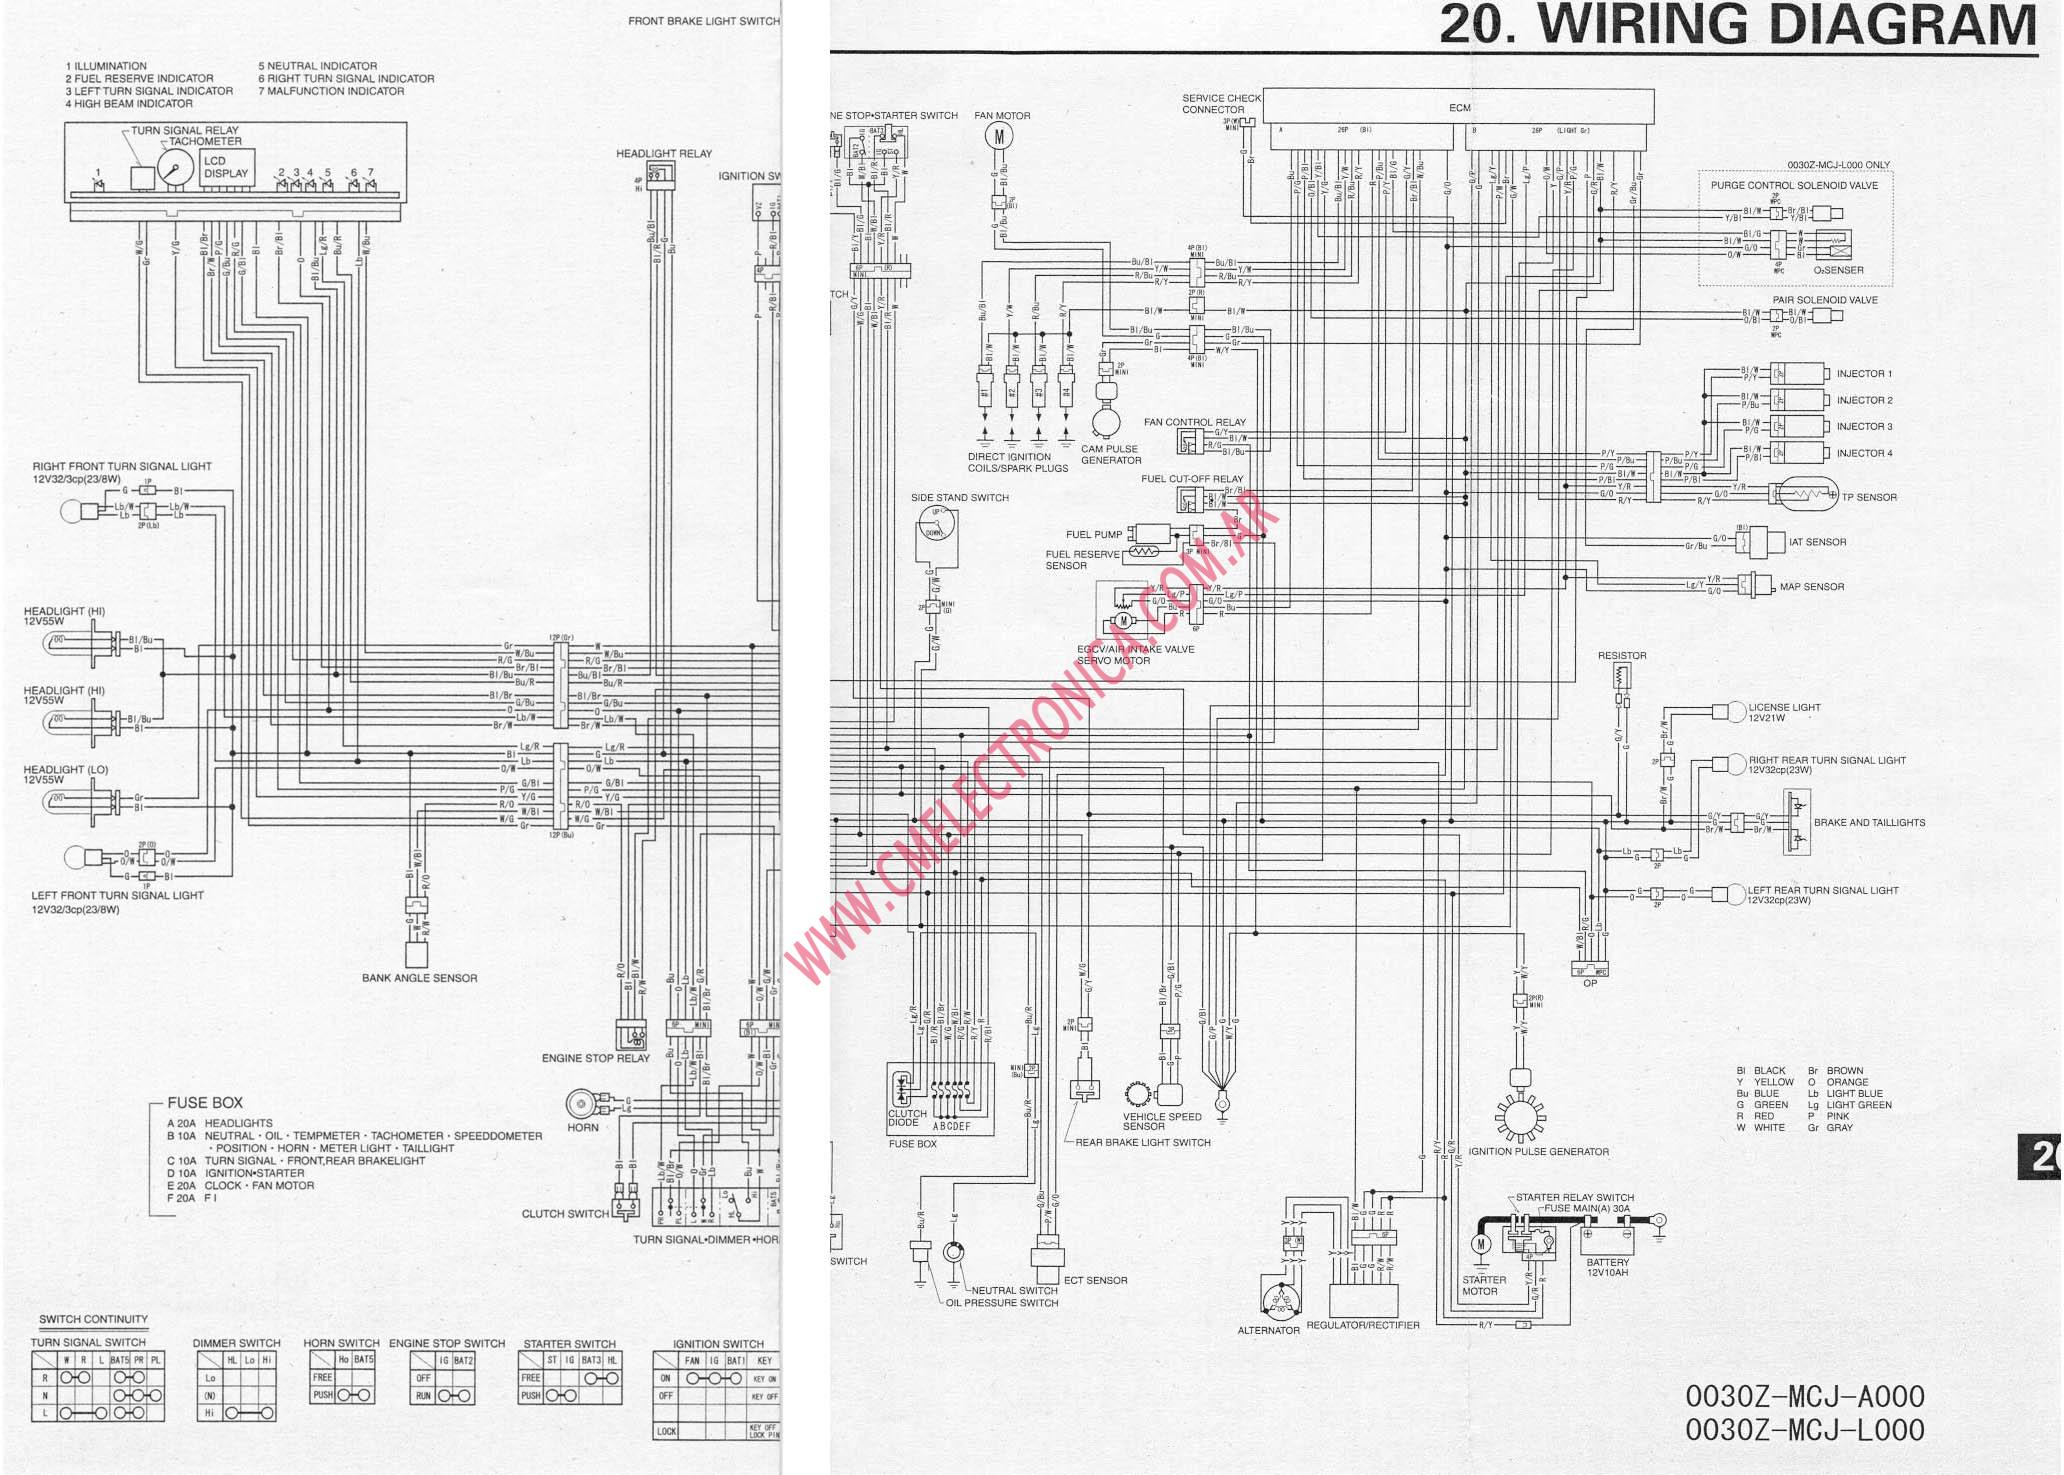 Honda 954 Wire Diagram Electronic Wiring Diagrams Racing Motorcycle Cbr 1000 Books Of U2022 600rr